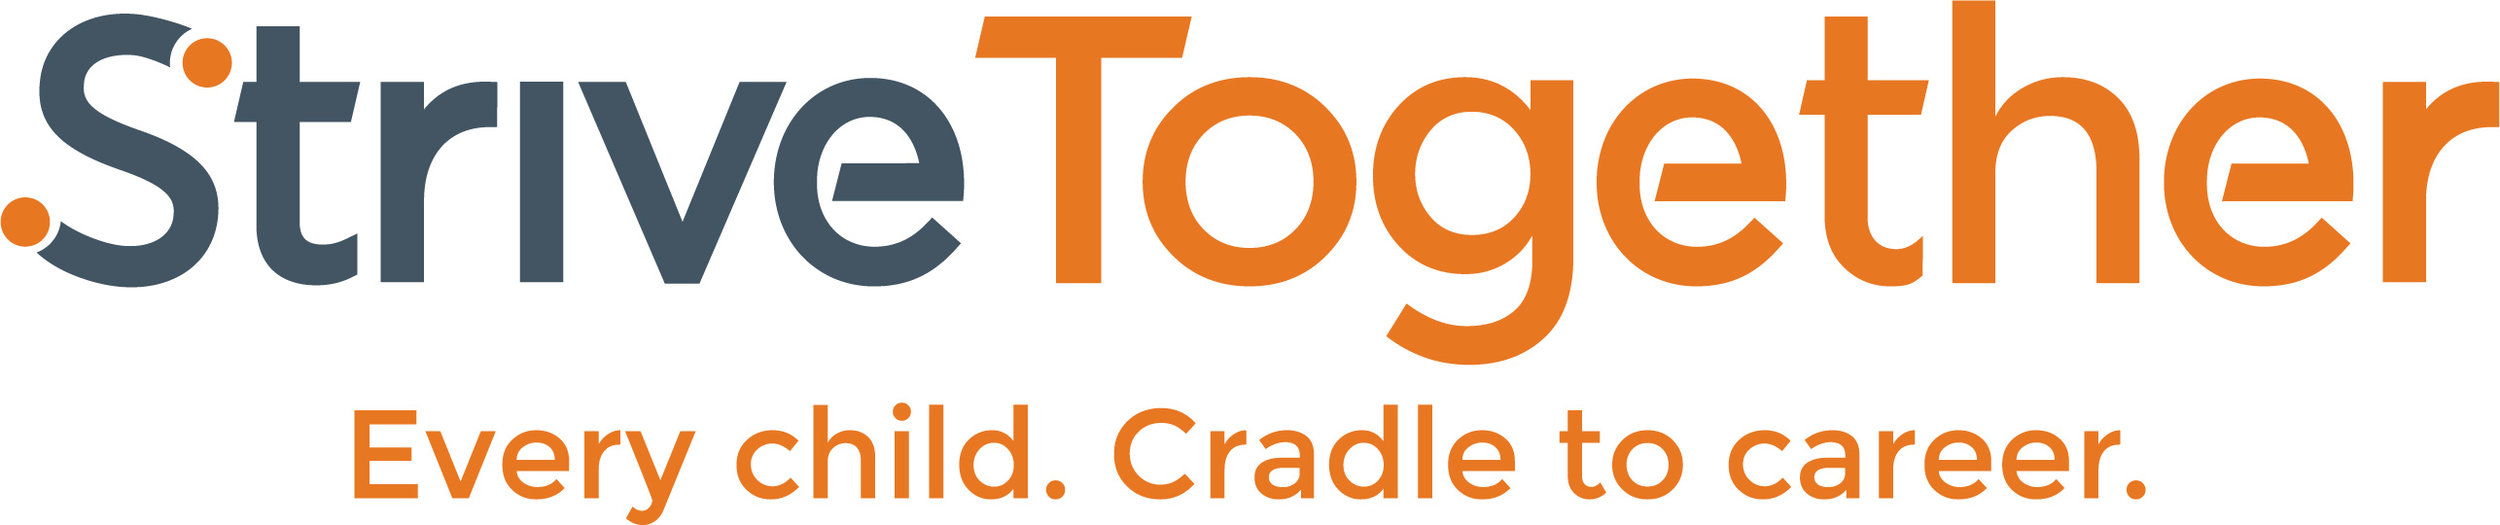 - We are part of StriveTogetherA national, nonprofit network of more than 70 community partnerships, all working to ensure that every child succeeds from cradle to career, regardless of race, family income or zip code. StriveTogether helps communities identify and scale what works in education.